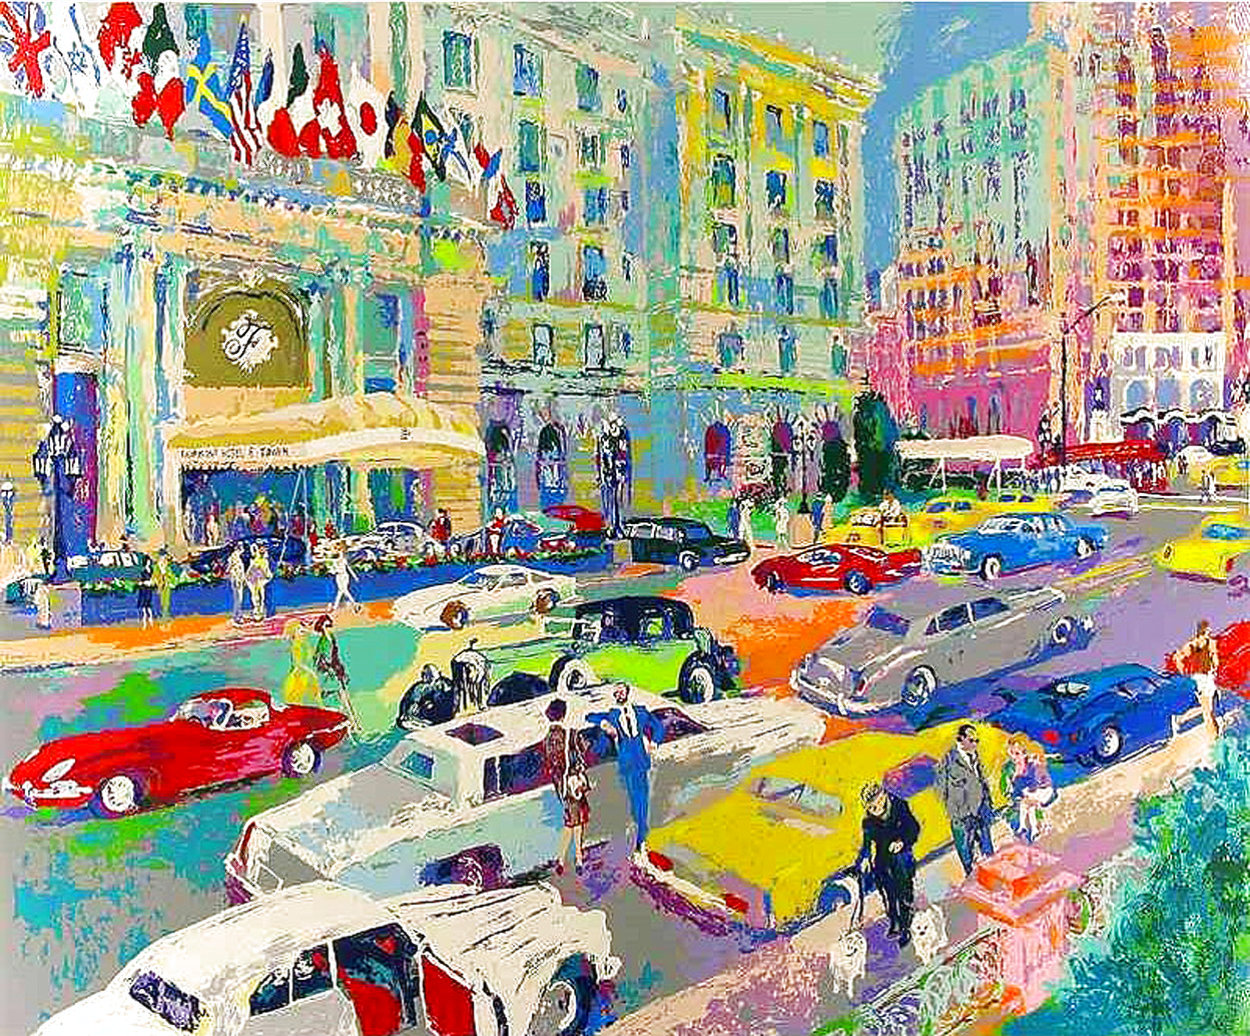 Nob Hill 1985 Limited Edition Print by LeRoy Neiman